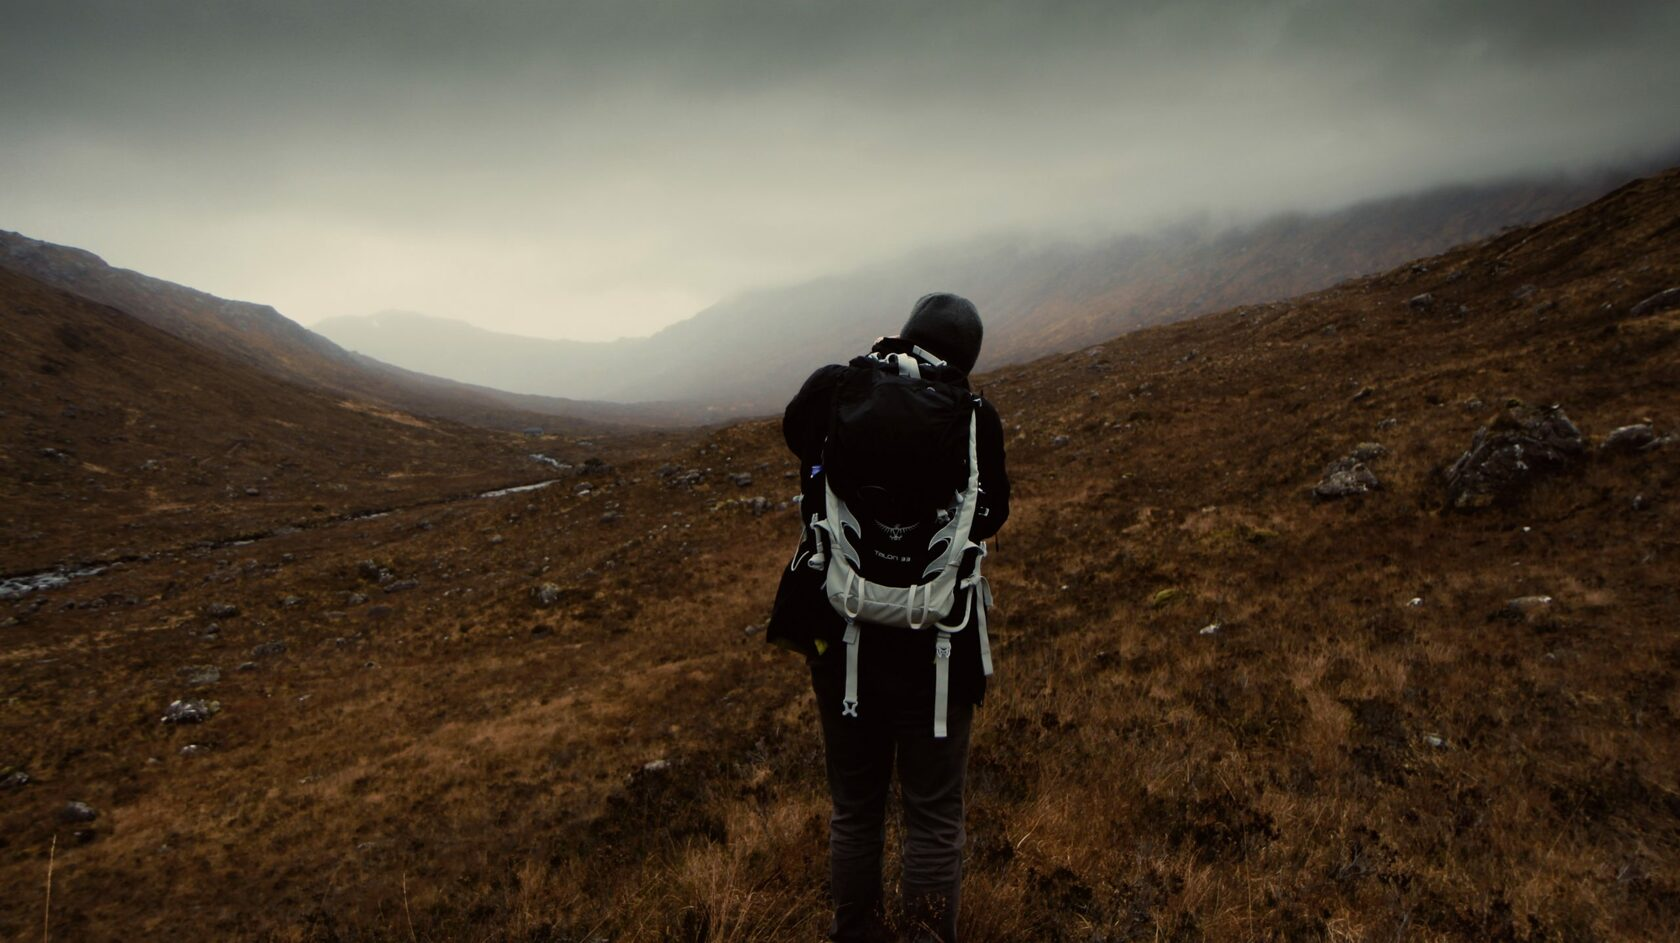 man travels with a backpack in nature